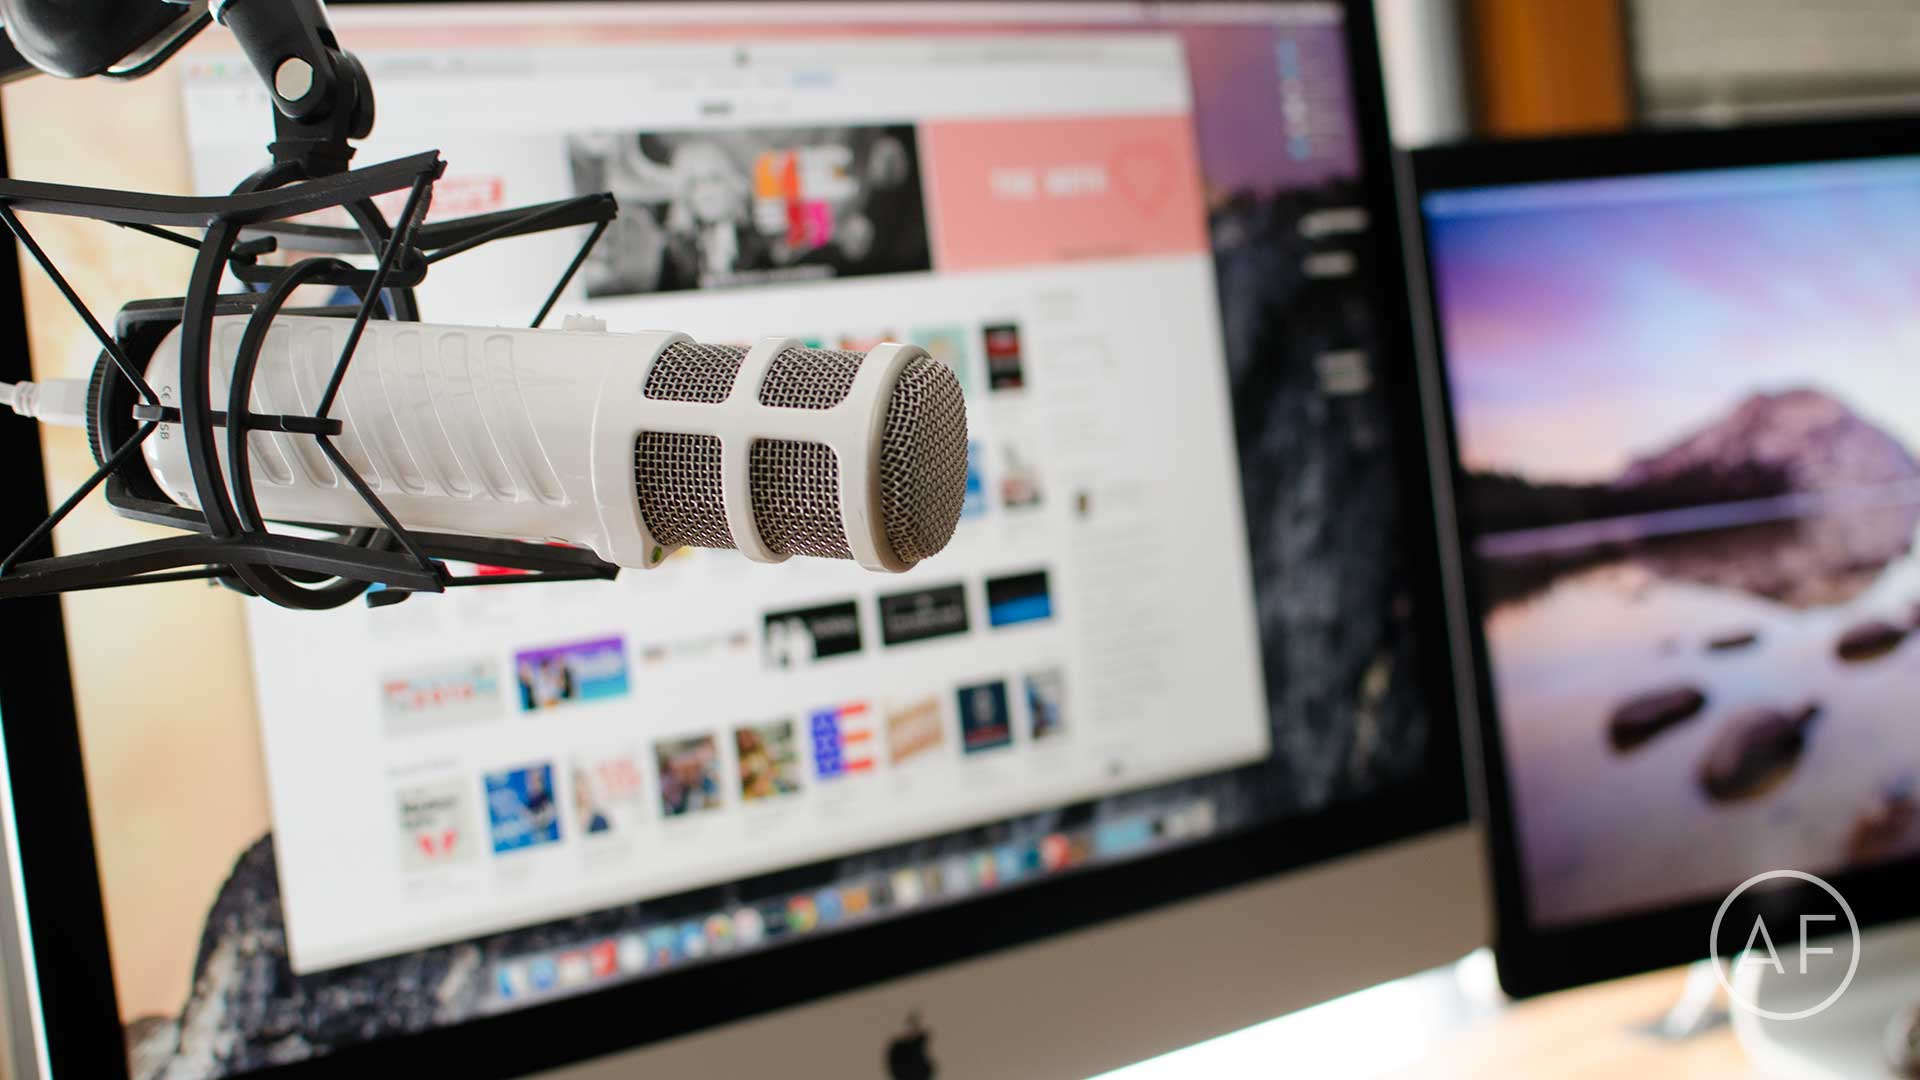 Fall Hd Wallpapers For Mac Gear Up With Great Mac Podcasting Equipment For Under 300